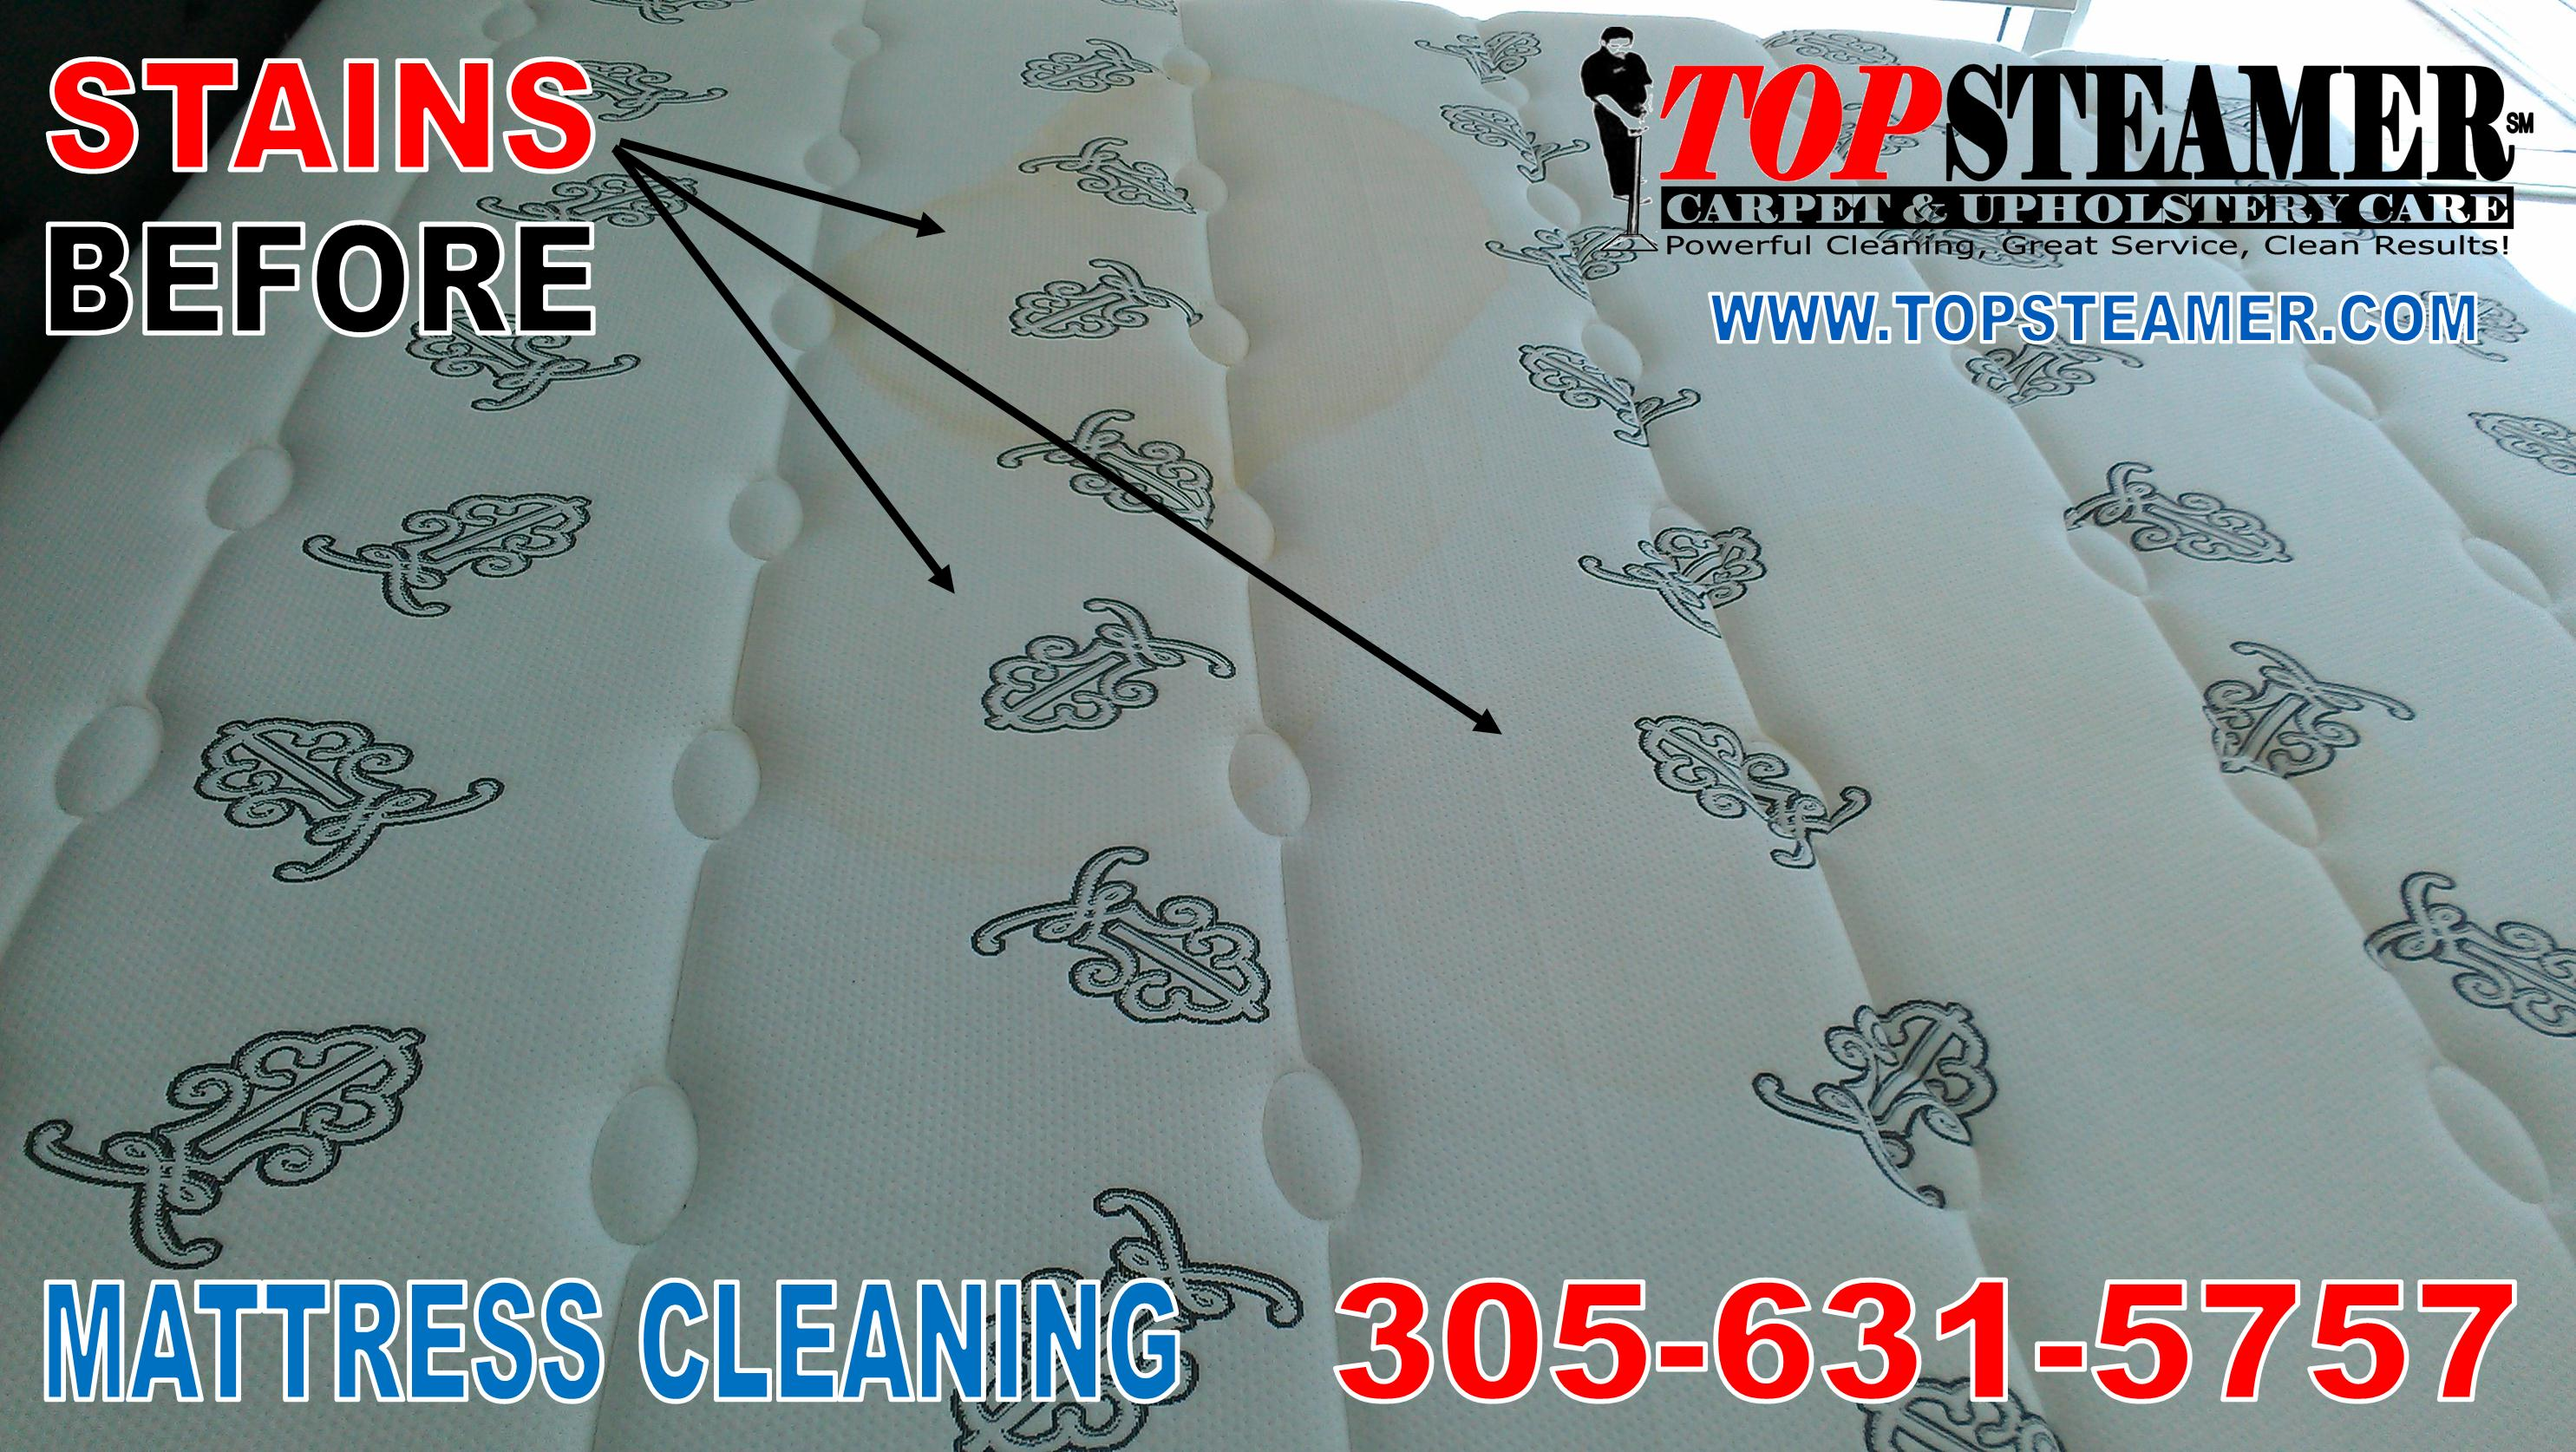 Miami Mattress Cleaning Sleep Healthier In A Cleaner